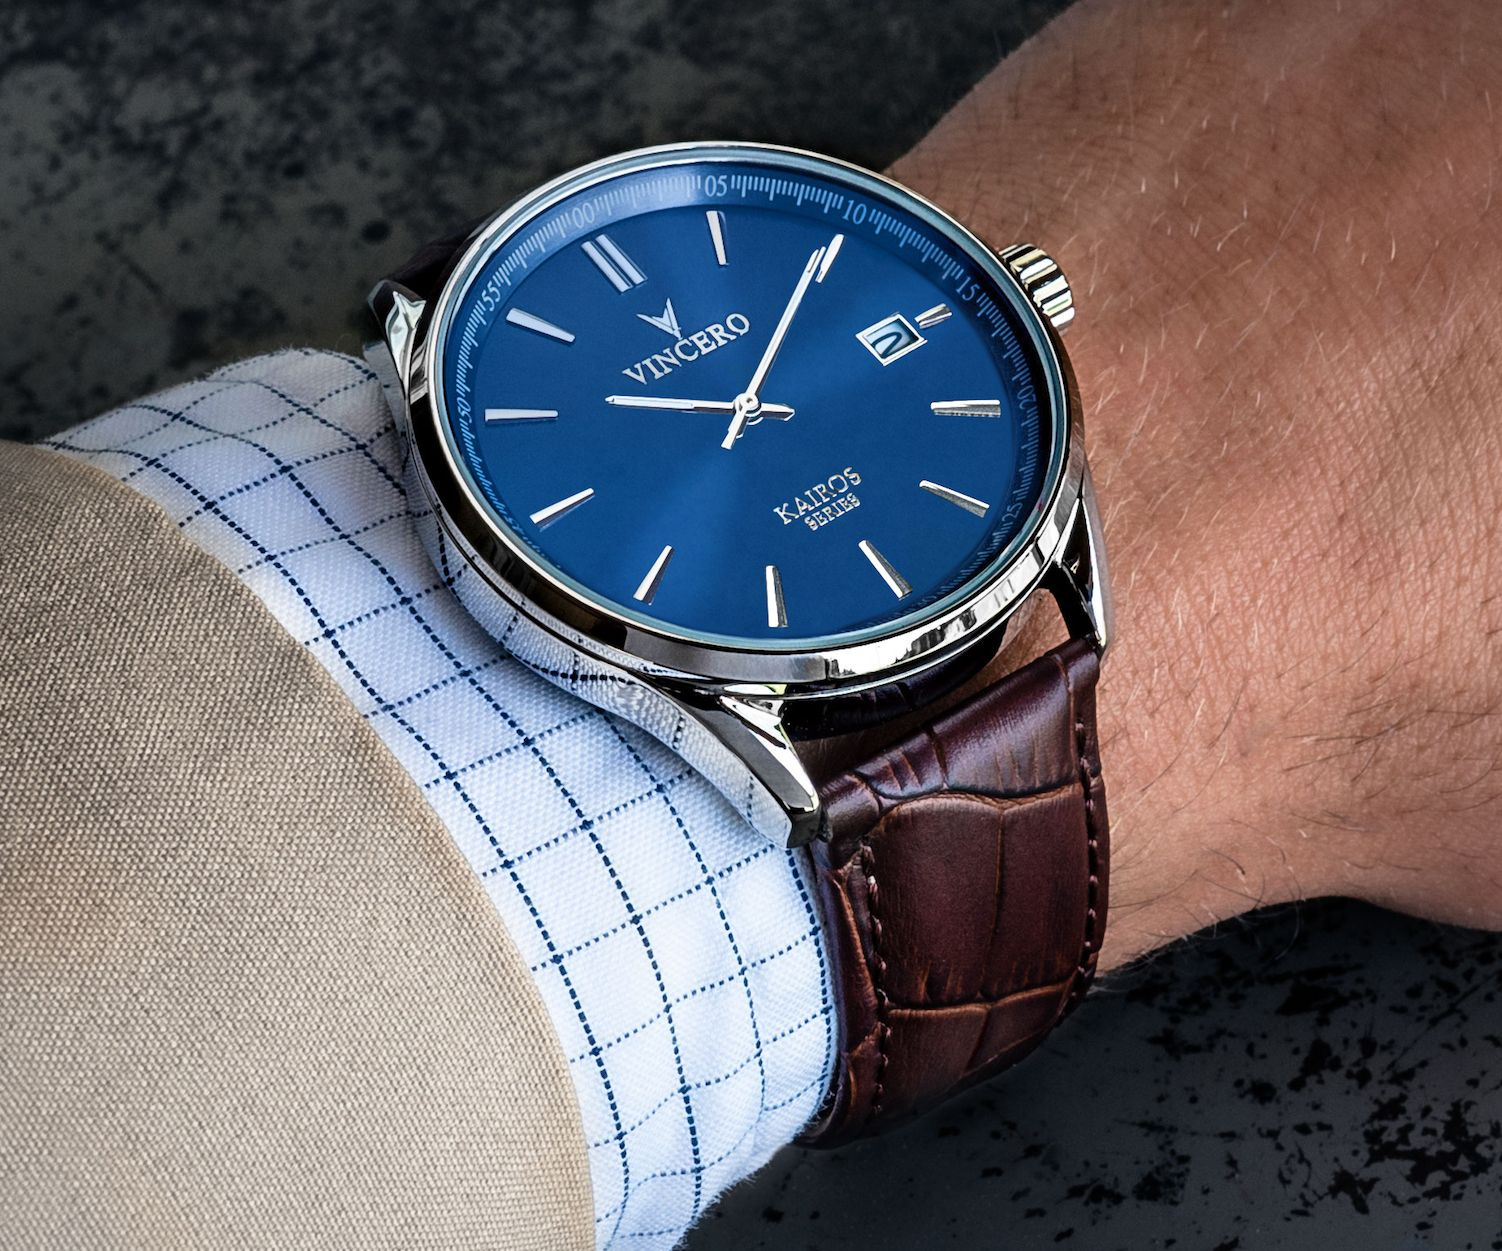 The Kairos Blue Brown Luxury Watches For Men Leather Band Leather Watch Bands